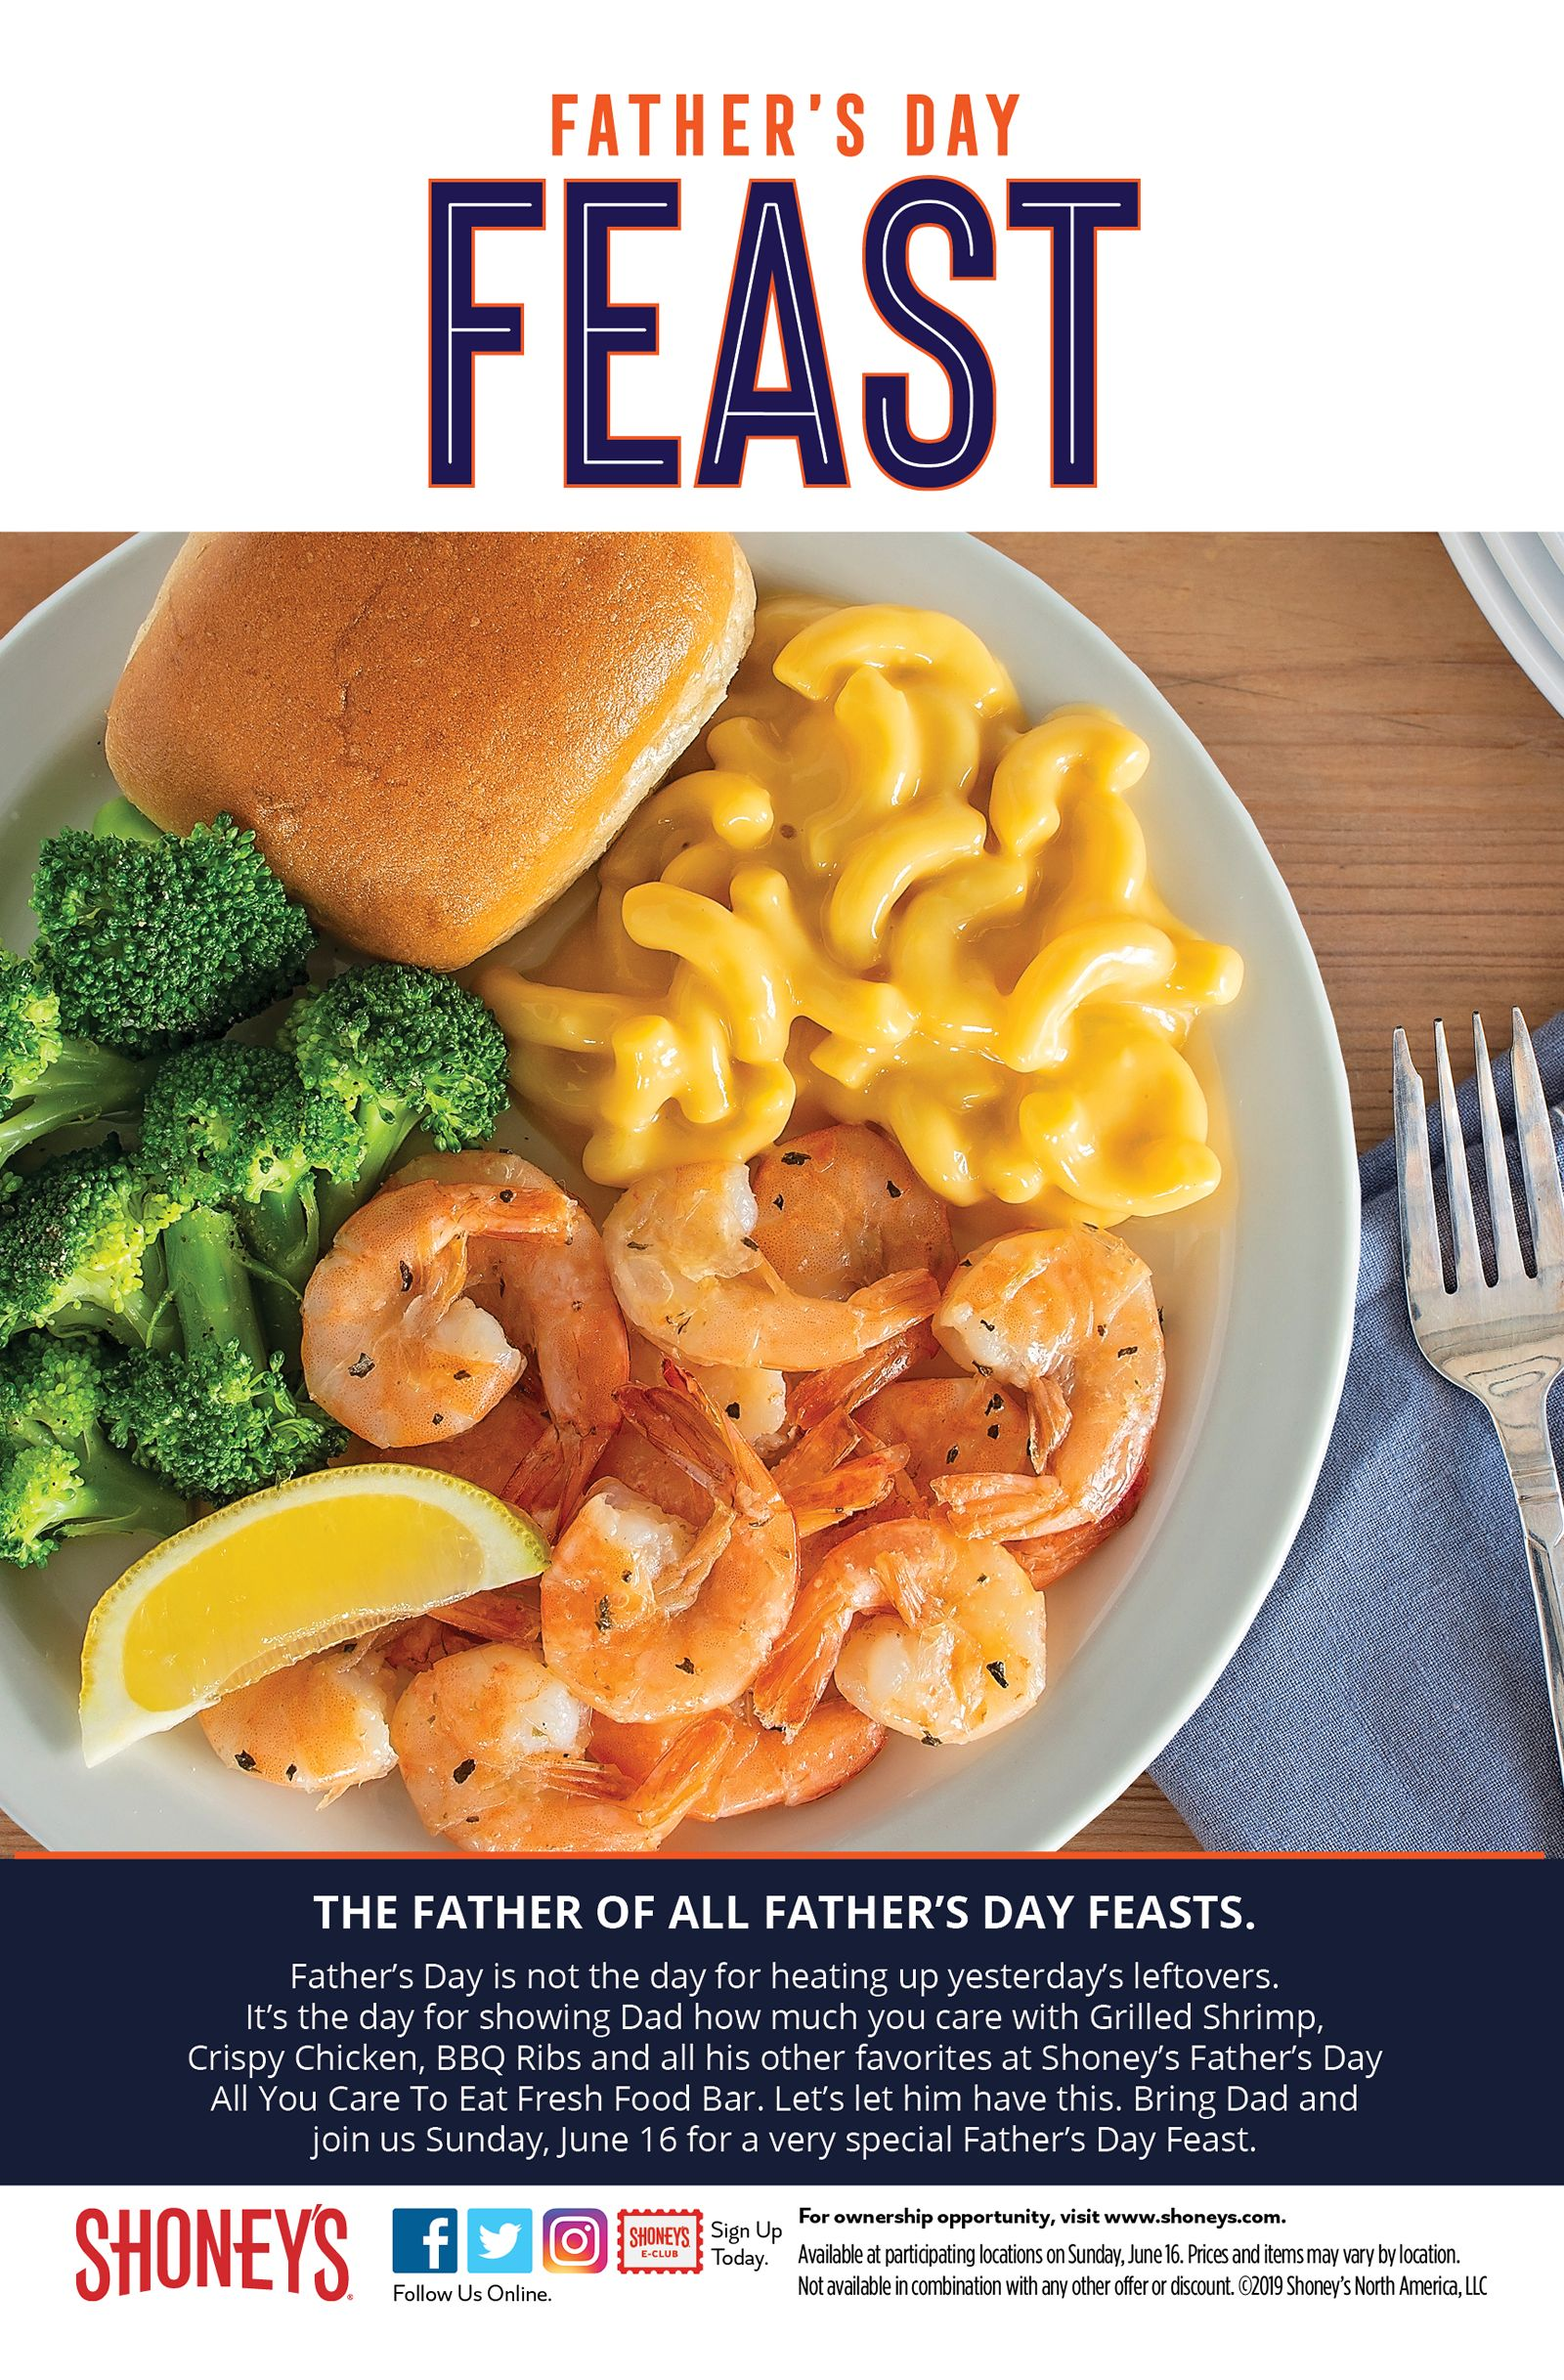 Shoney's Will Treat Dads to a Special, Enhanced All You Care to Eat, Freshly Prepared Food Bar on Father's Day, Sunday, June 16